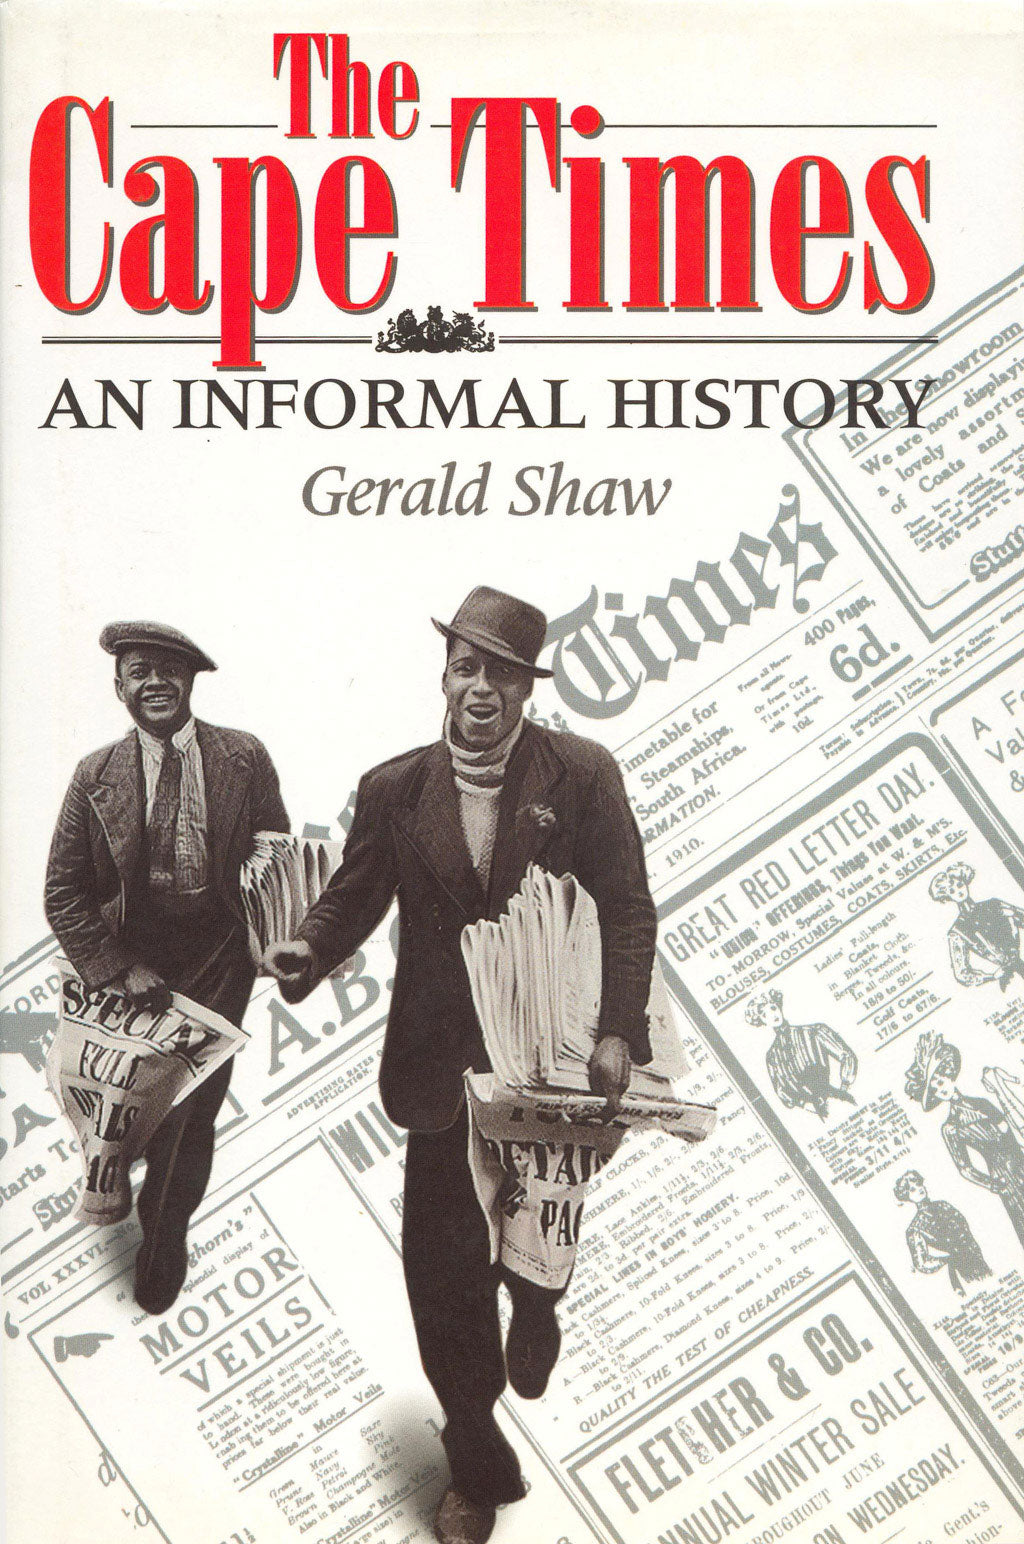 THE CAPE TIMES: An informal history